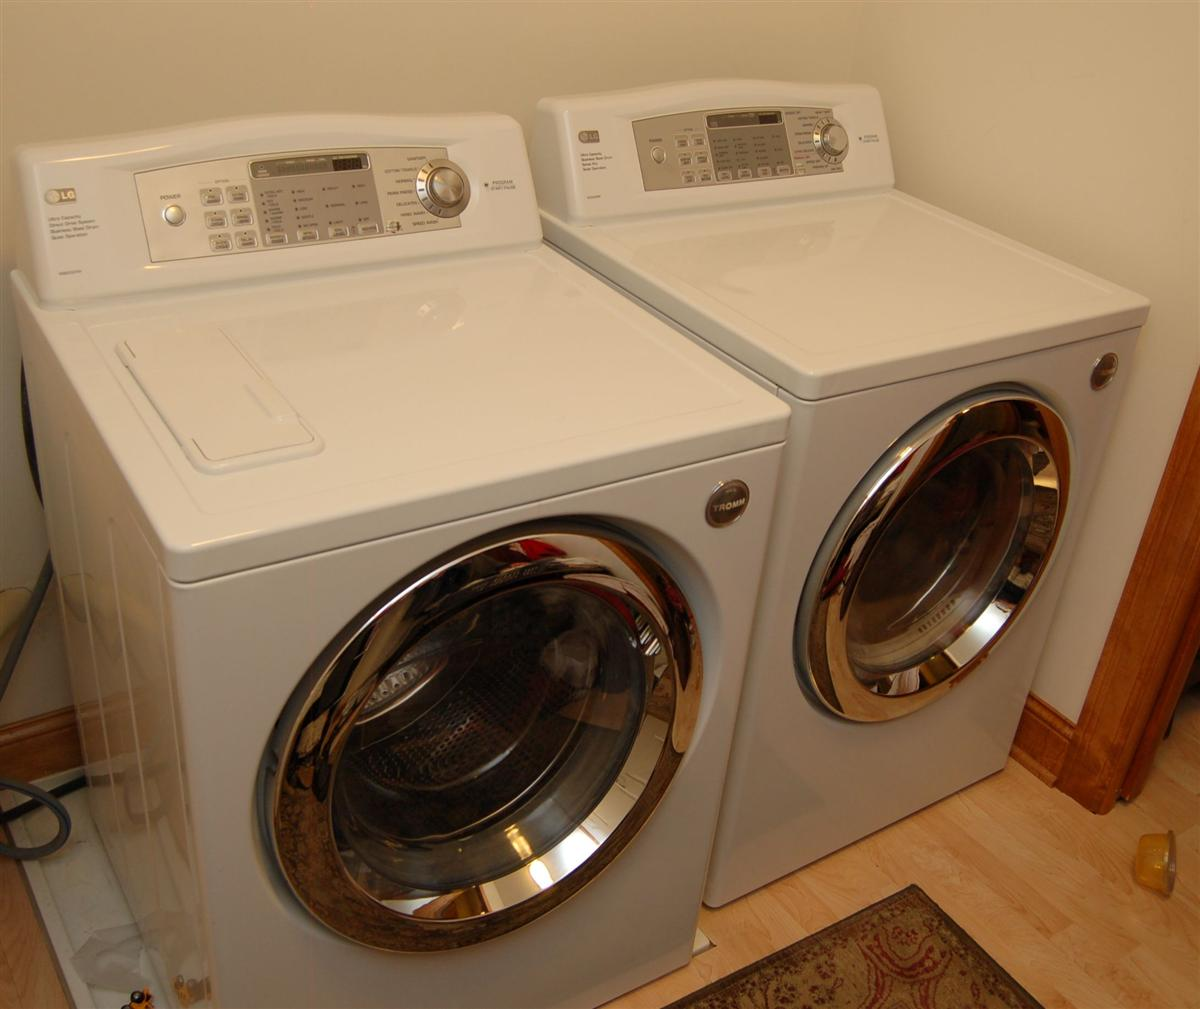 Washer and dryer combo for small spaces american hwy - Small space washing machines set ...